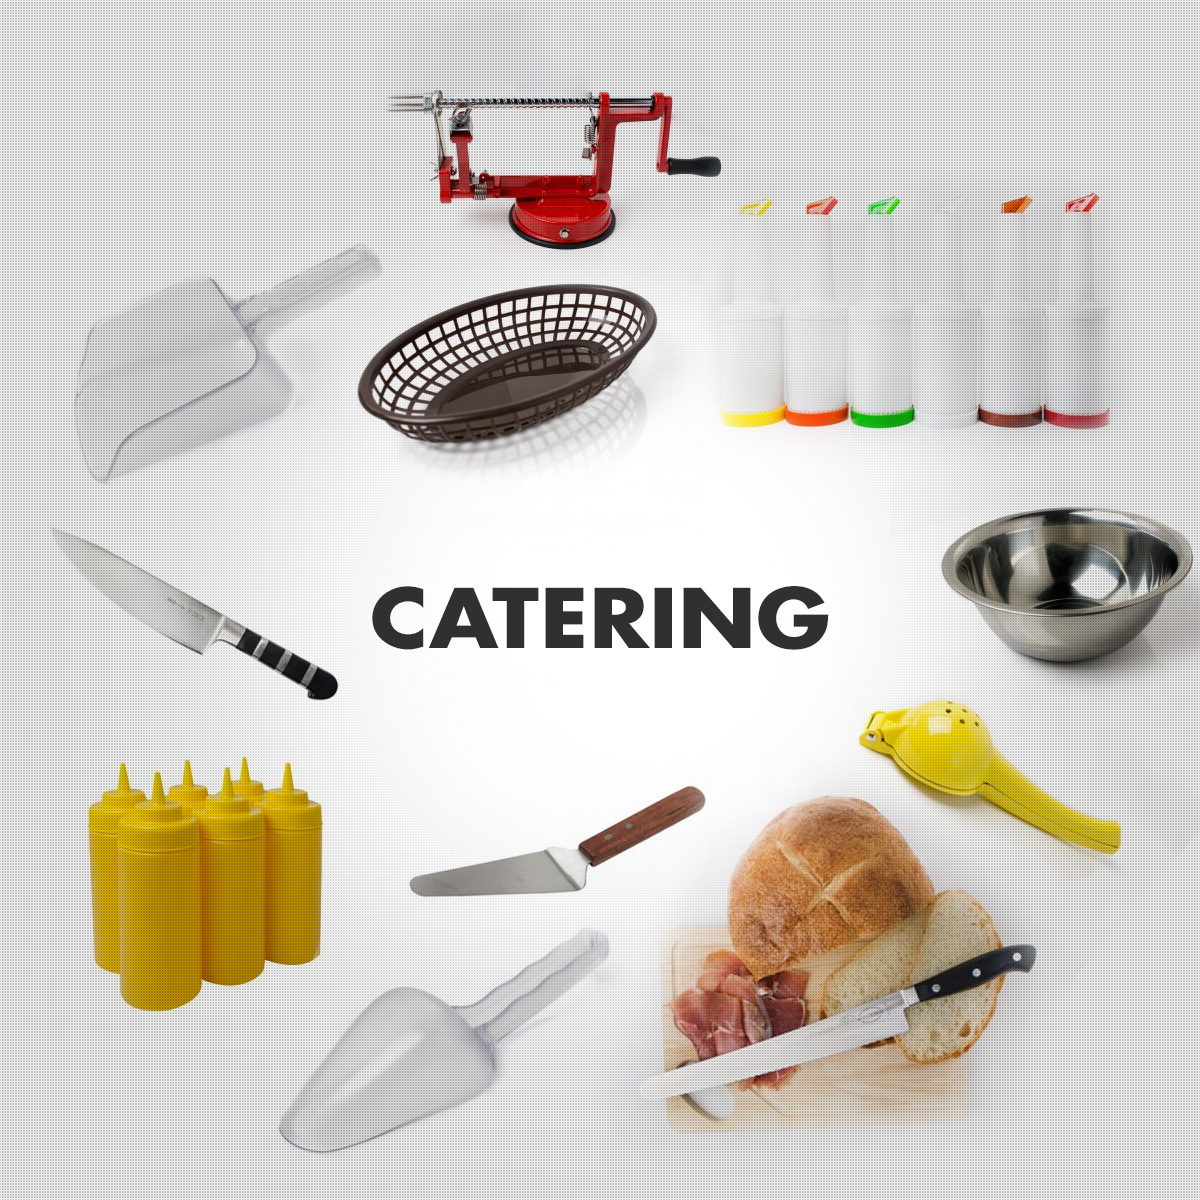 Catering/Retail Supplies - Chef's Knives, Pour Bottles, Service Trays, Pie Servers, Scoops, Citrus Squeezers